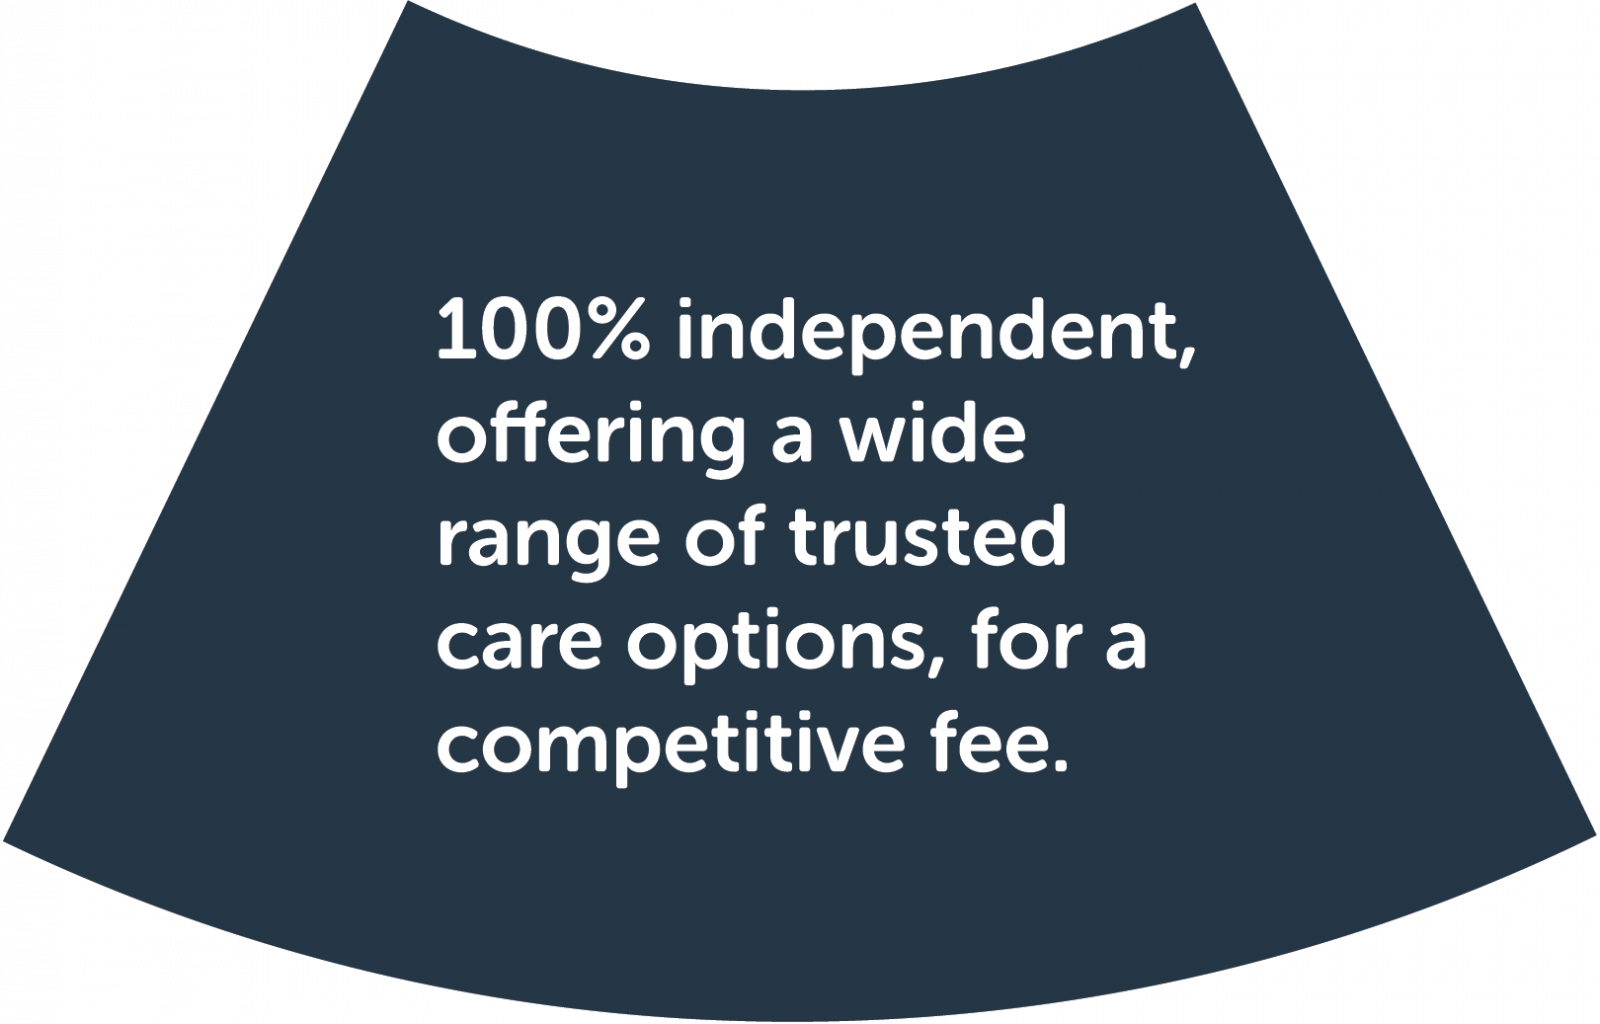 Step 4: Organise services and support. 100% independent, offering a wide range of trusted care options, for a competitive fee.